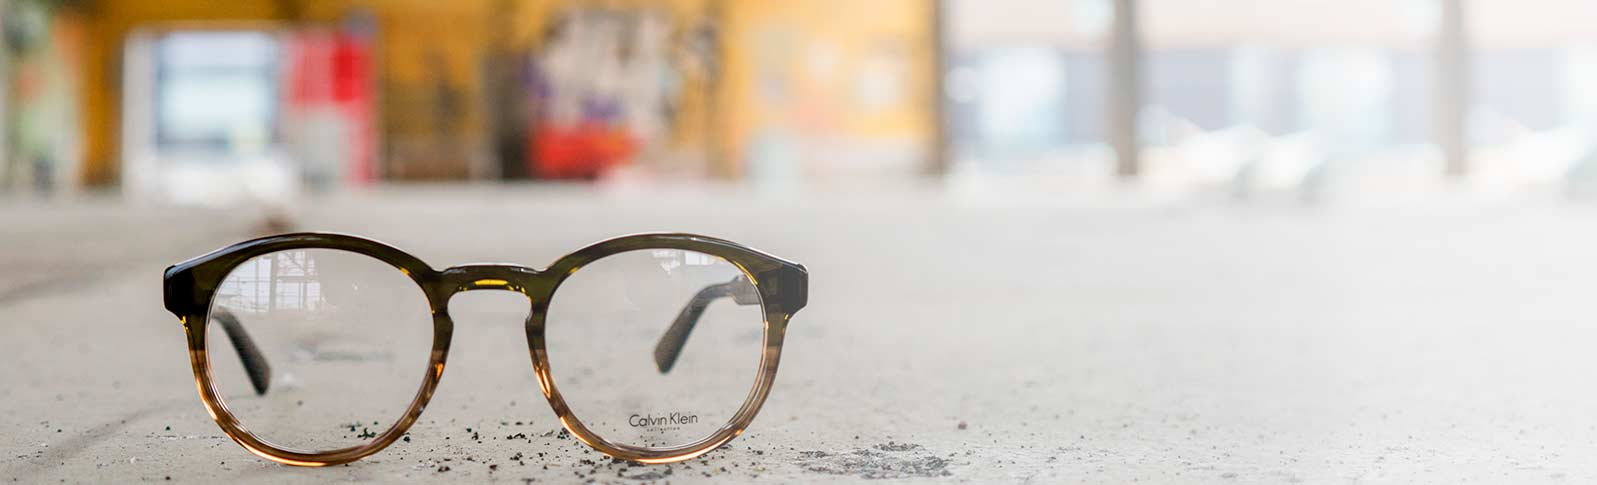 glasses from calvin klein in an industrial environment